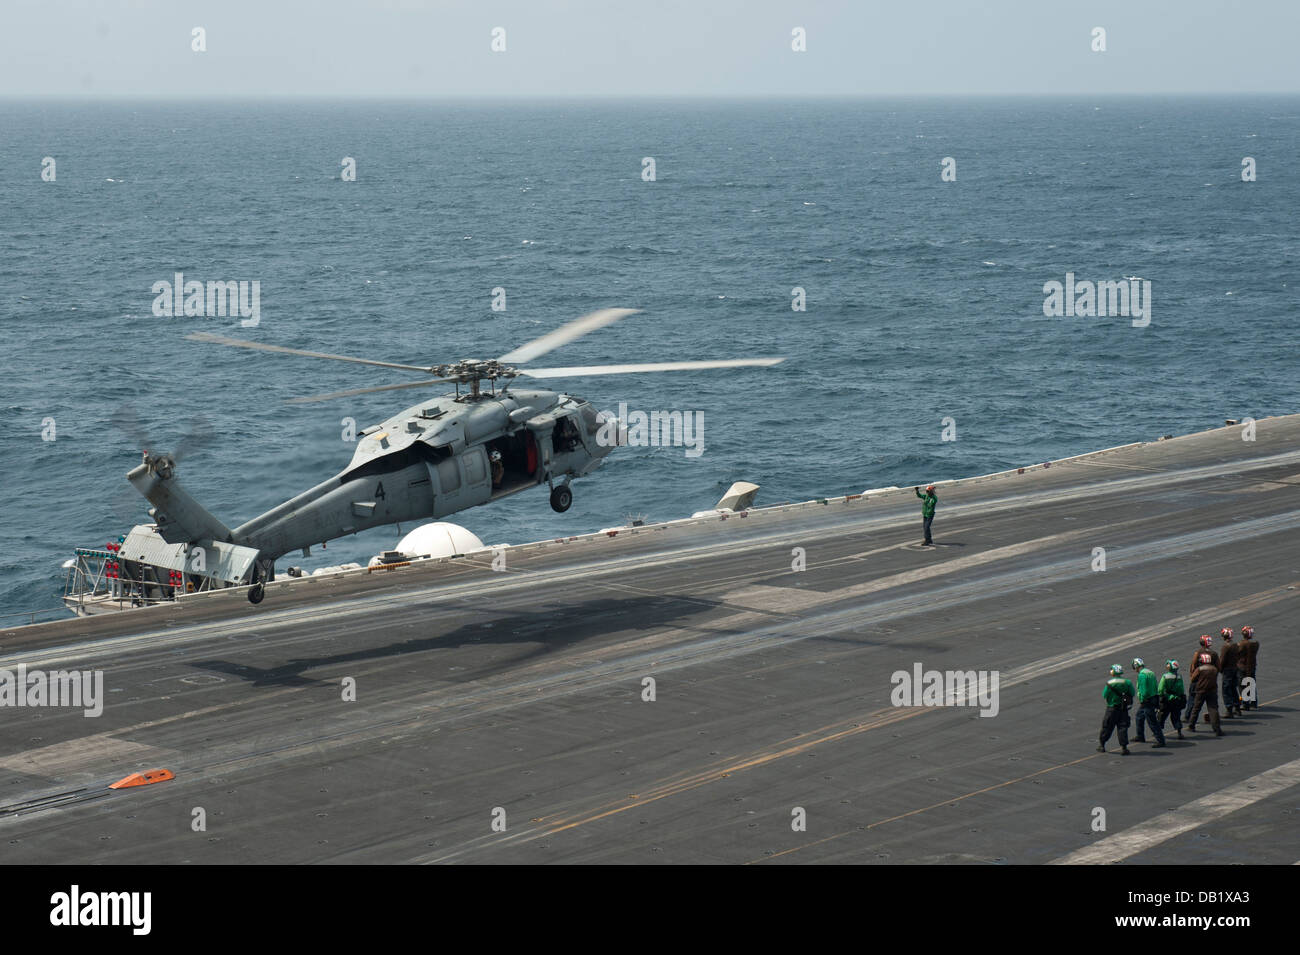 An MH-60S Sea Hawk helicopter assigned to the Indians of Helicopter Sea Combat Squadron (HSC 6) lands on the flight - Stock Image